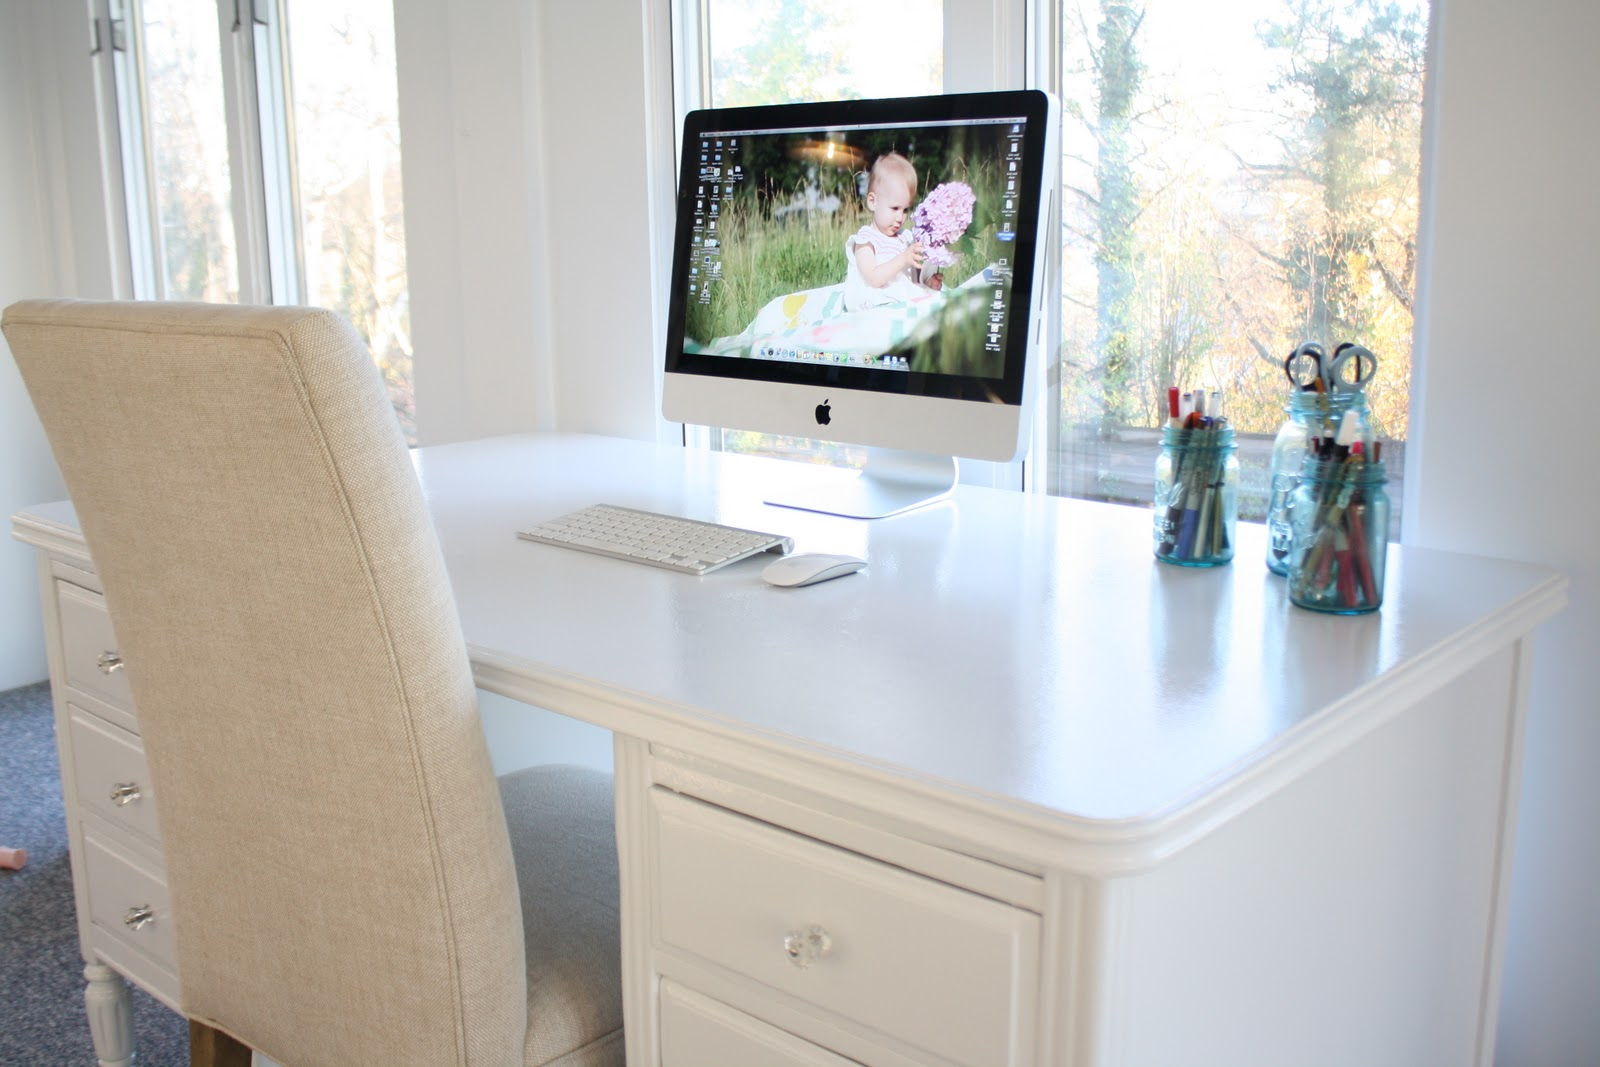 innovative hardwares and color your restoration with gorgeous bossy desks from aviatorwing desk office zq together home furniture hardware flatiron simple inside